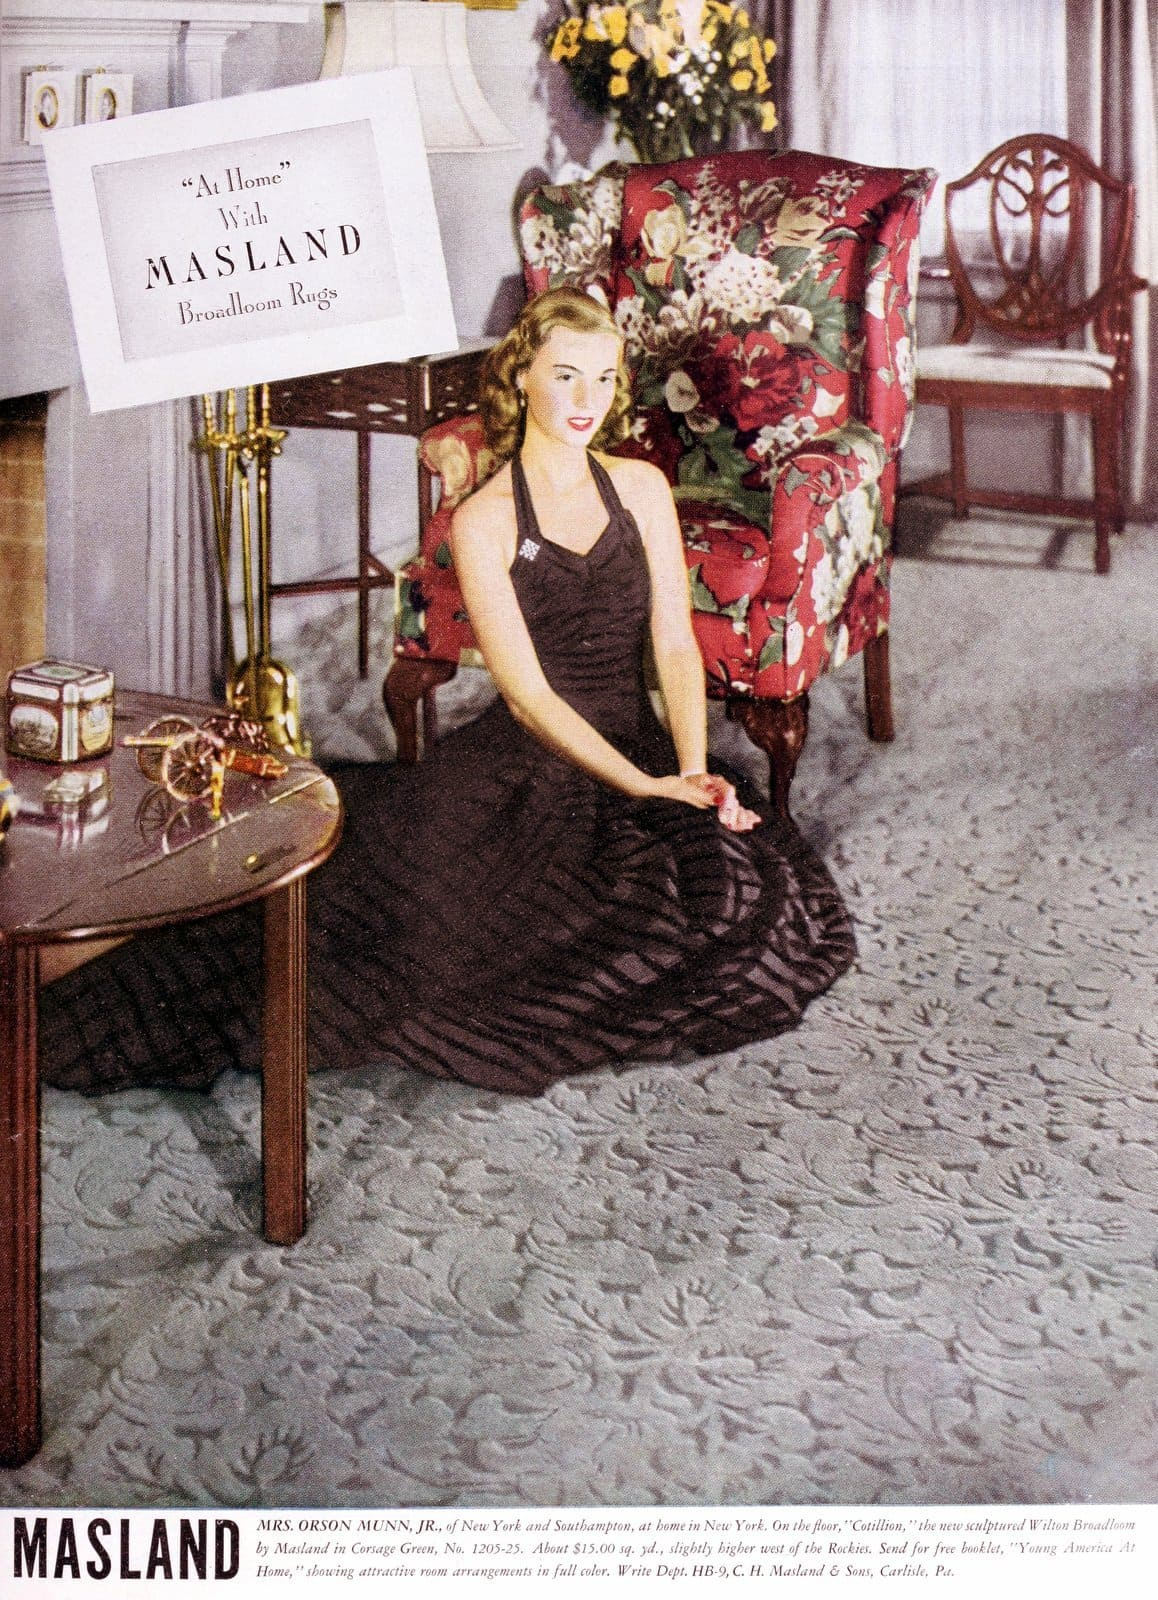 Mrs Orson Munn Jr - Rich wife from the 1940s with Masland Broadloom Rug